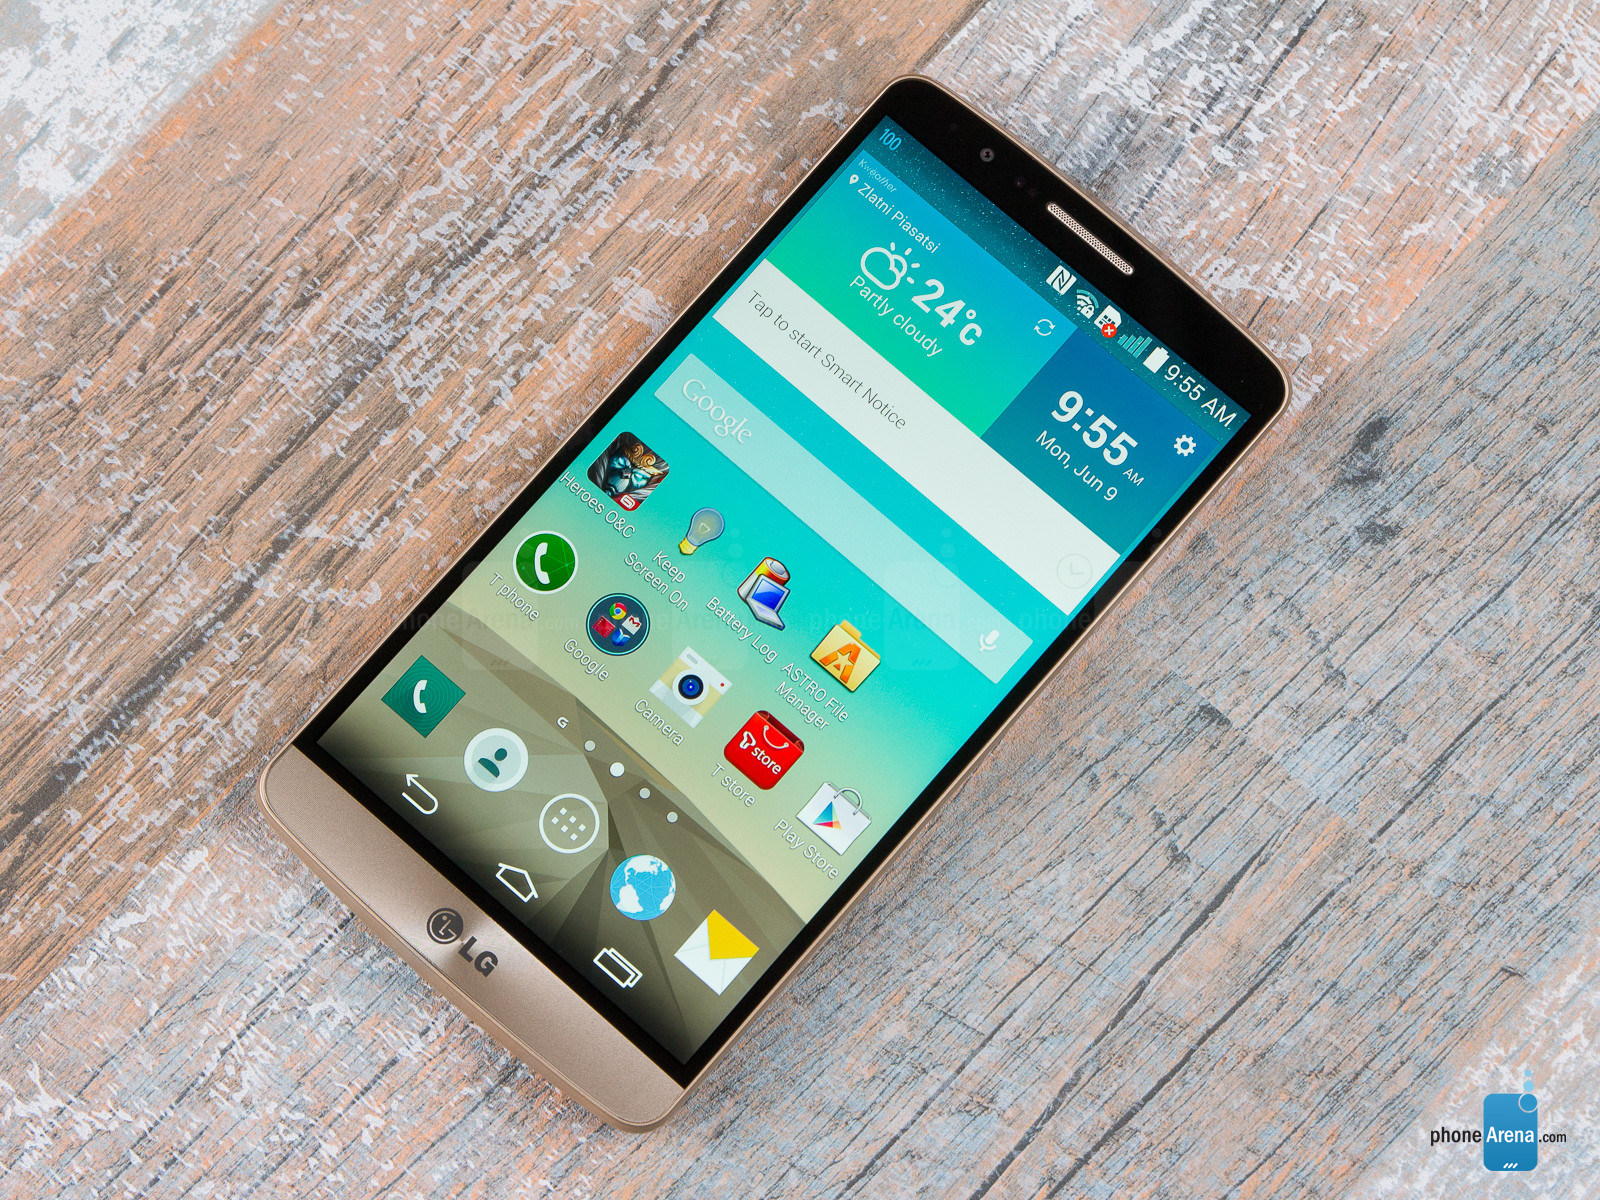 LG-G3-Review-003